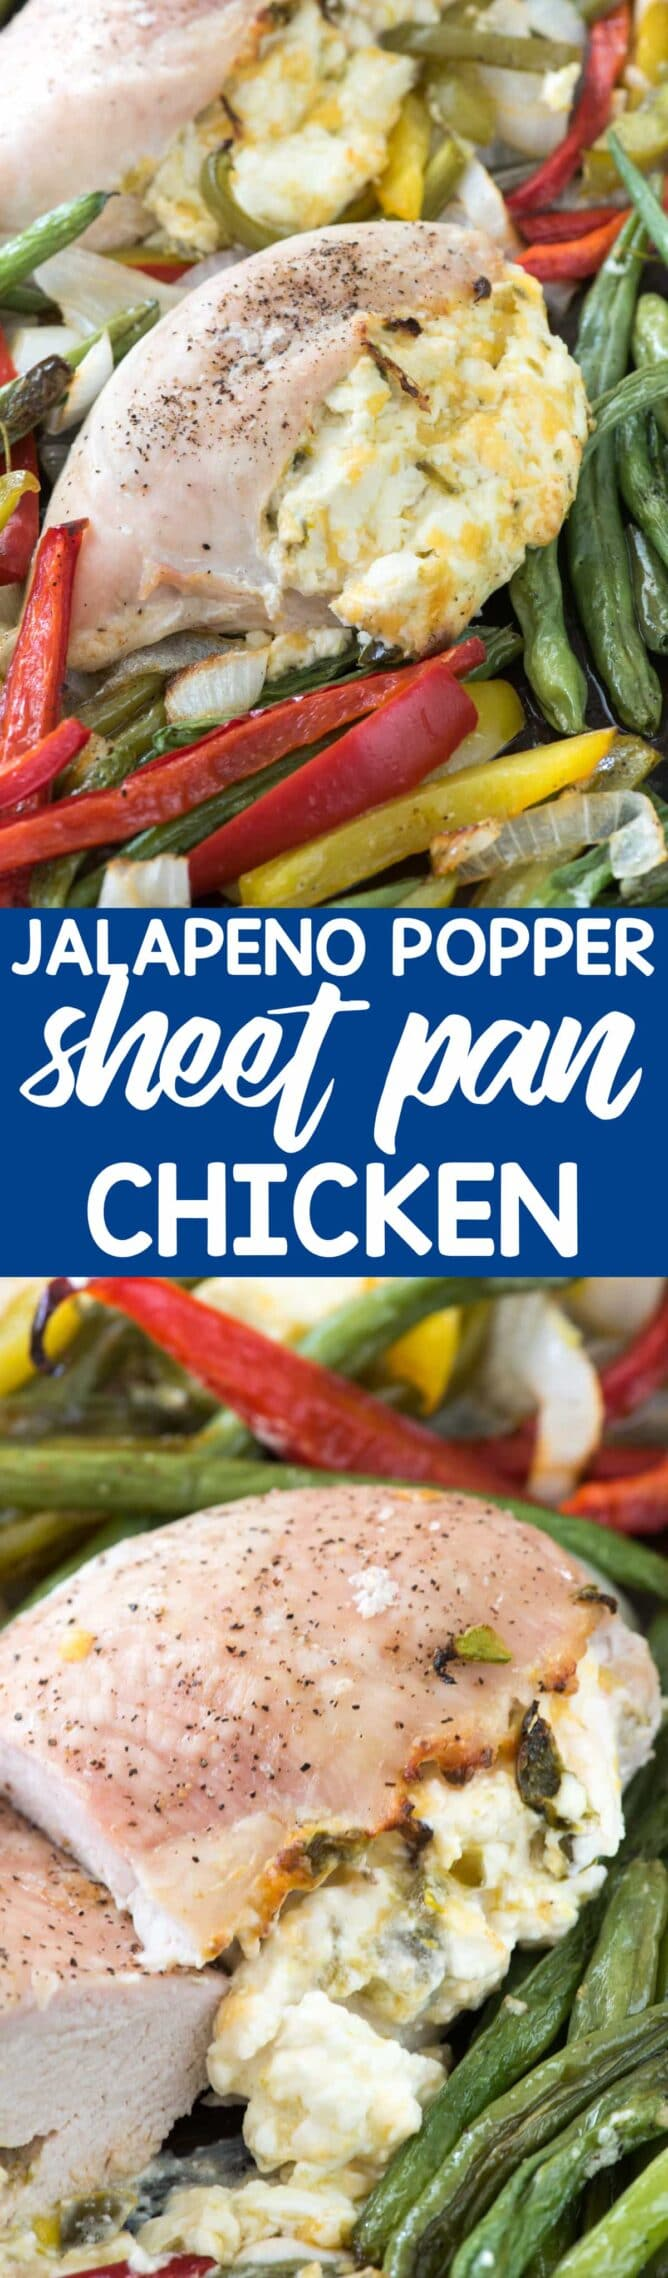 collage of Jalapeño Popper Sheet Pan Chicken photos - this EASY chicken dinner is a sheet pan meal that's done fast! It's the perfect easy weeknight meal; chicken breasts stuffed with a creamy jalapeño mixture!